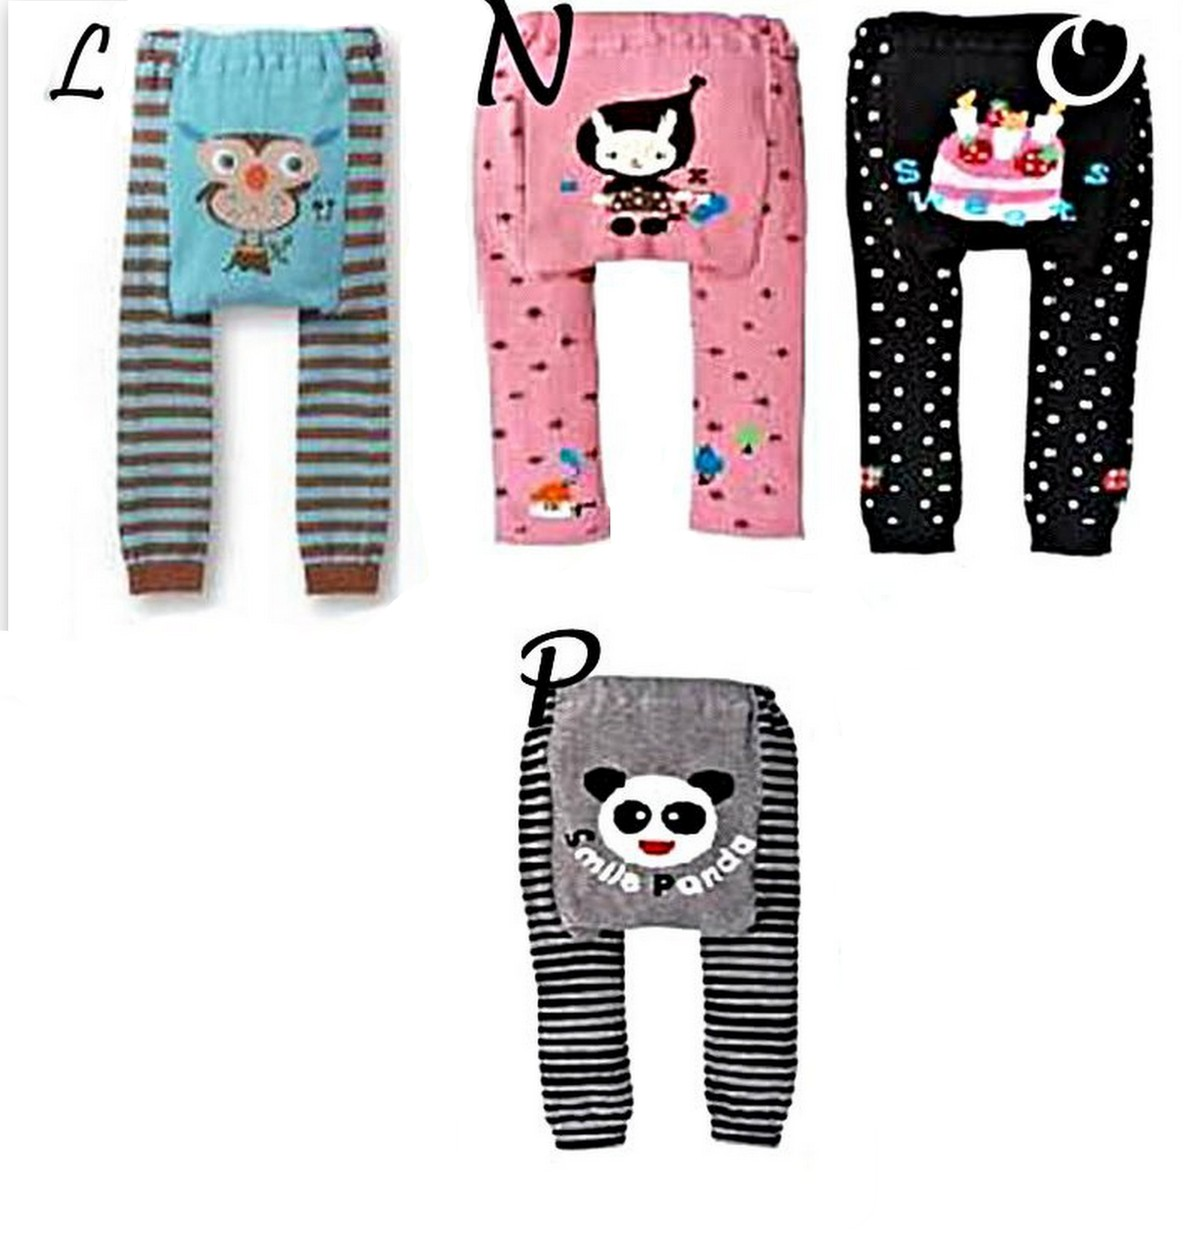 Boy Dog Clothes Ebay Electronics Cars Fashion | Holidays OO